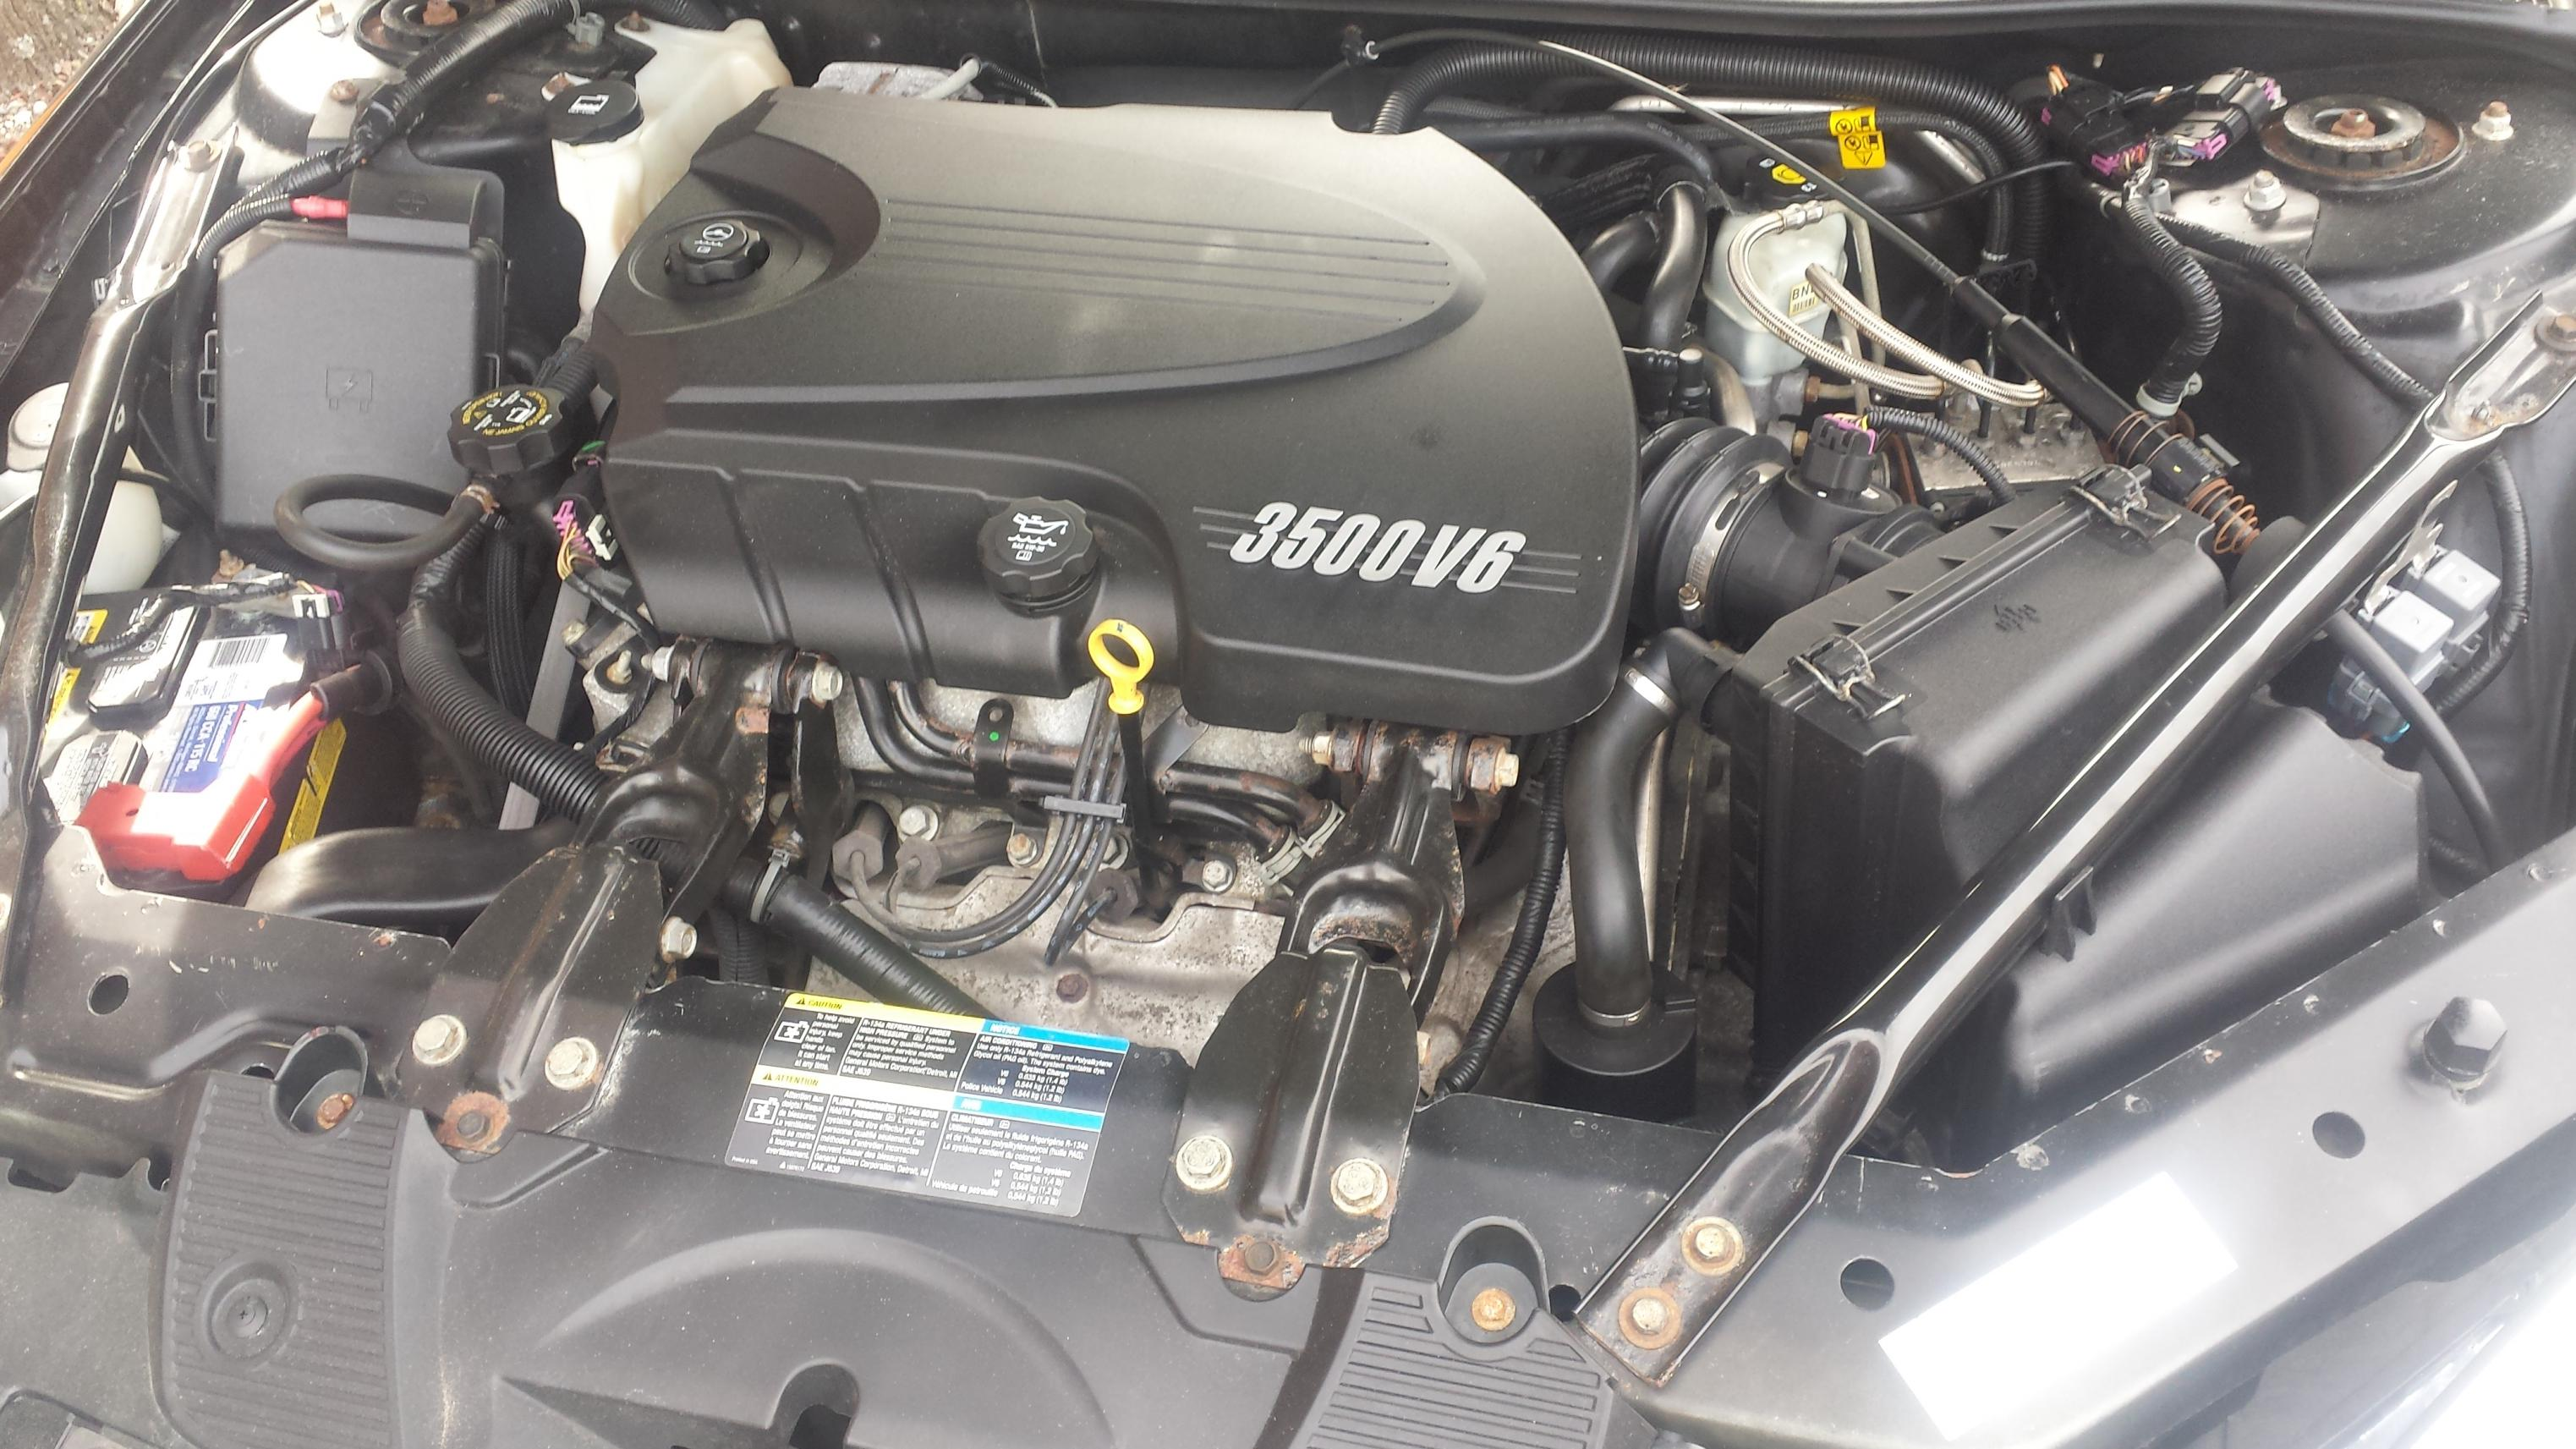 Chevy 3 3 >> under my hood - Chevy Impala Forums